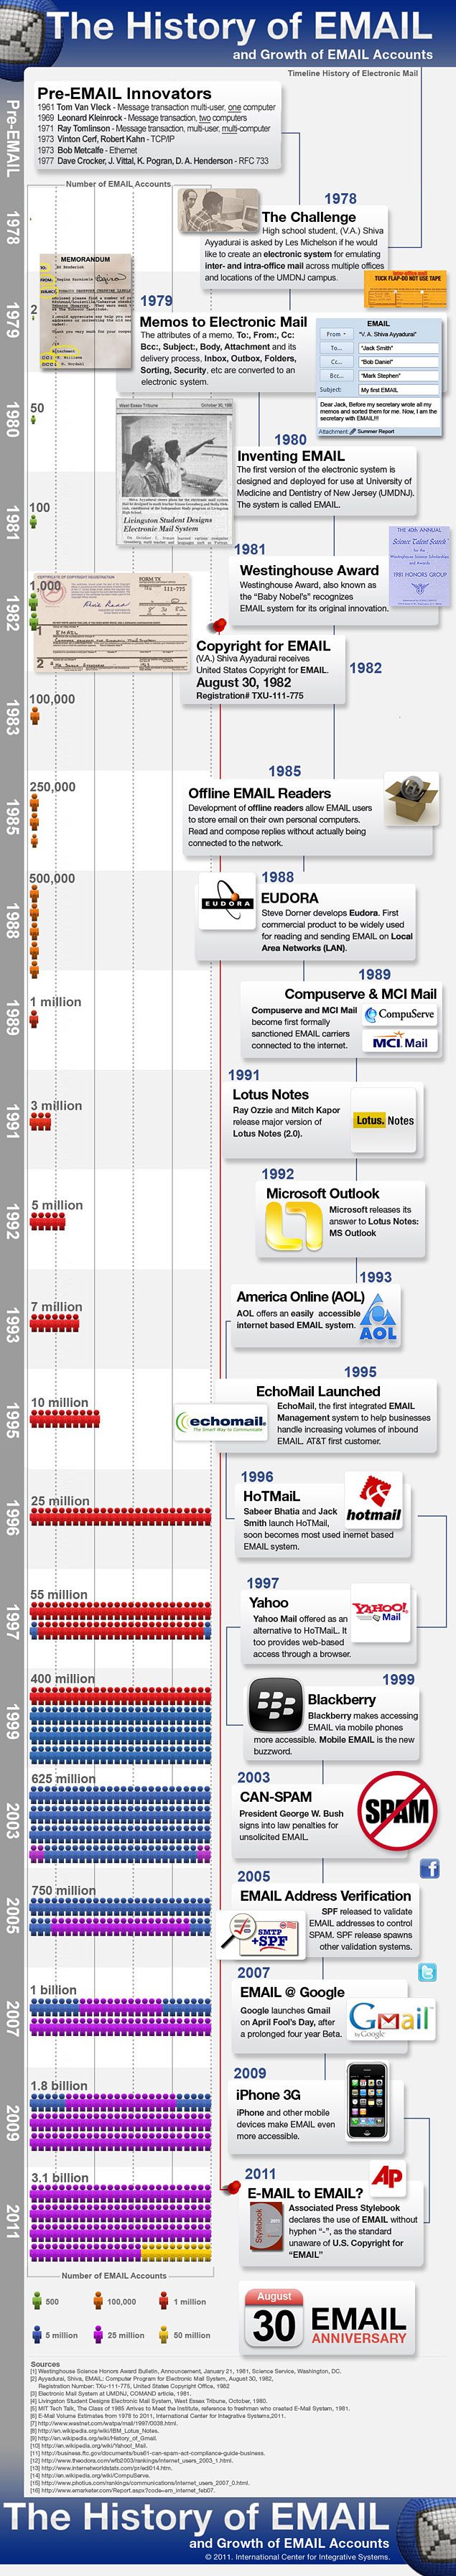 The Advent of Email